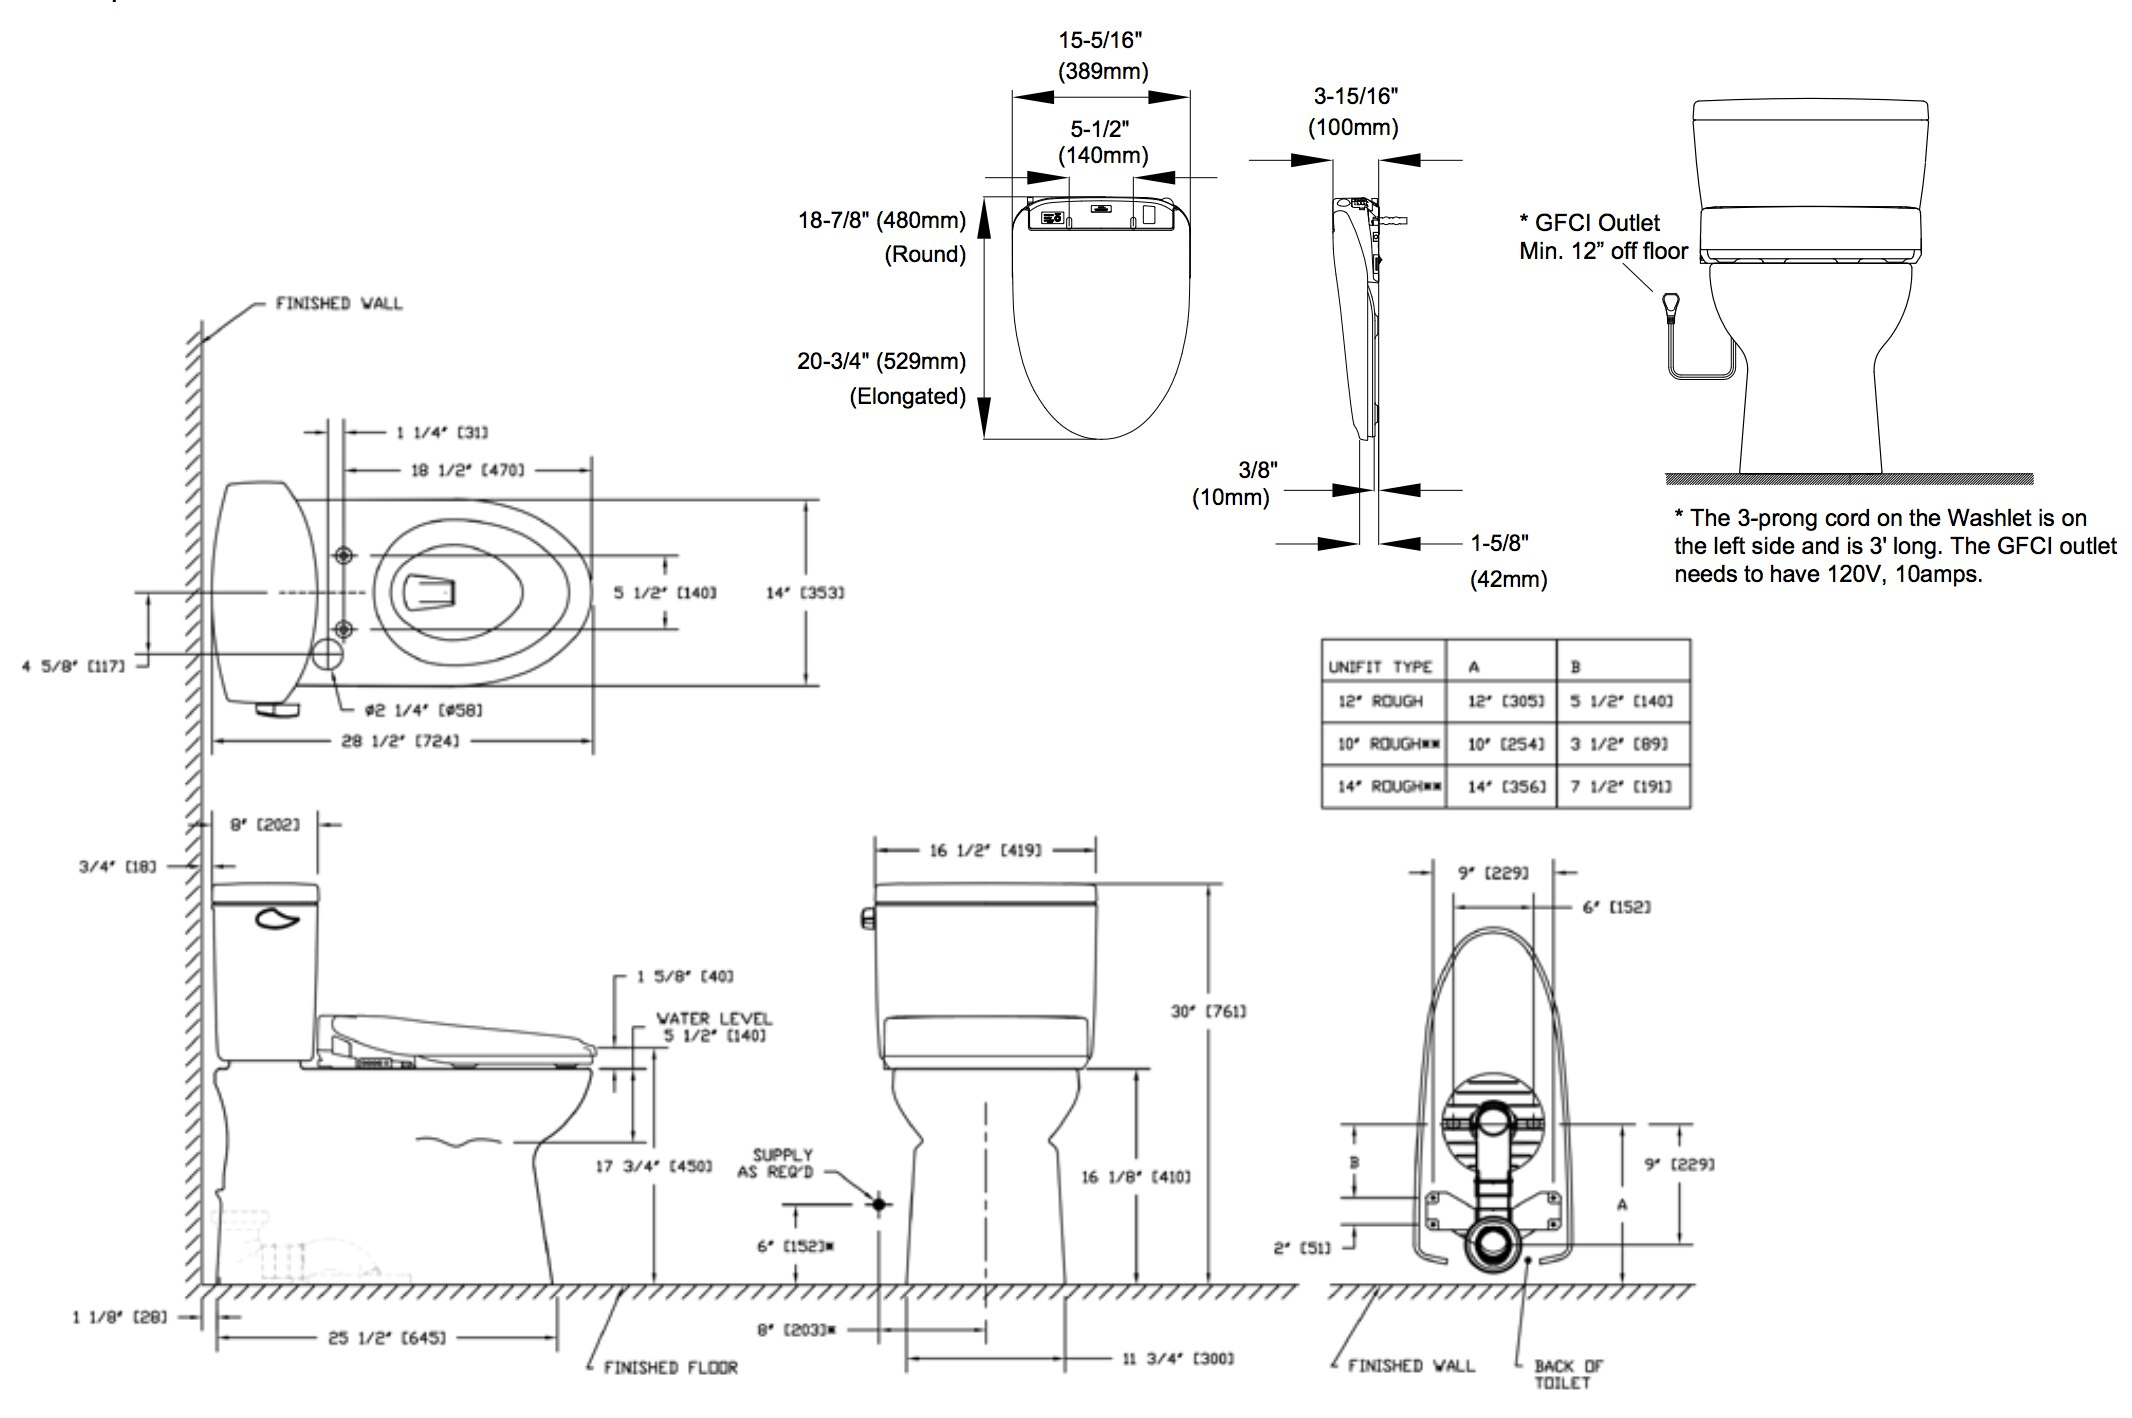 toto-vespin-ii-washlet-s350e-two-piece-toilet-and-bidet-system-1.28-gpf-diagram.png